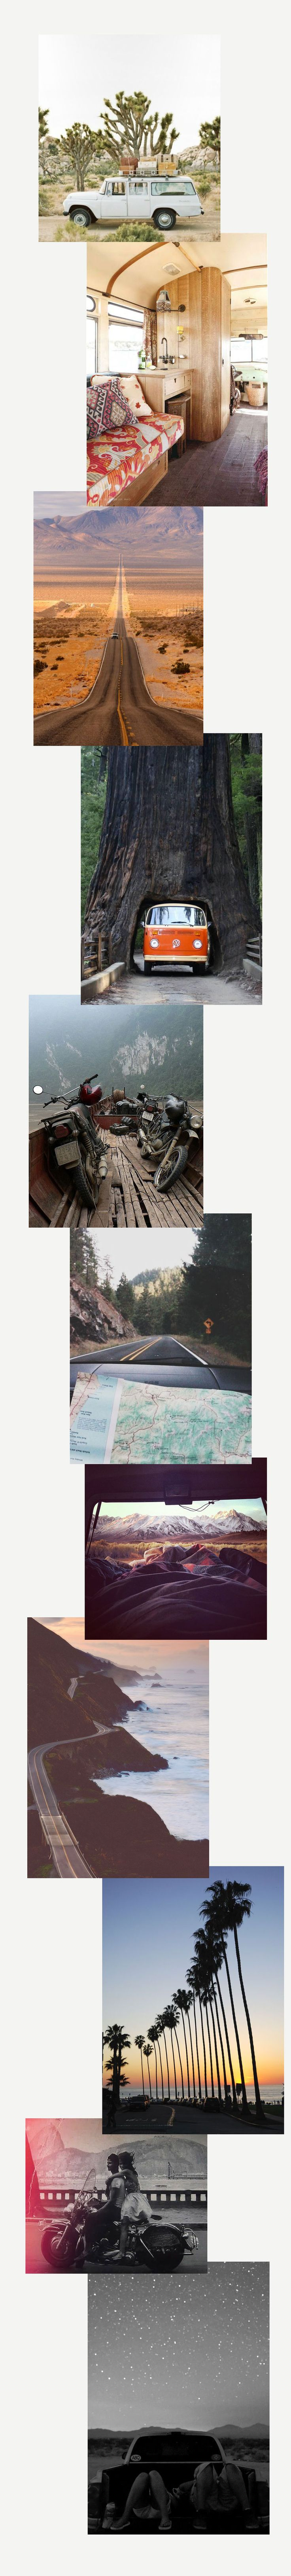 Travel Daydreaming: Road Trip by The Wanderlove Collective